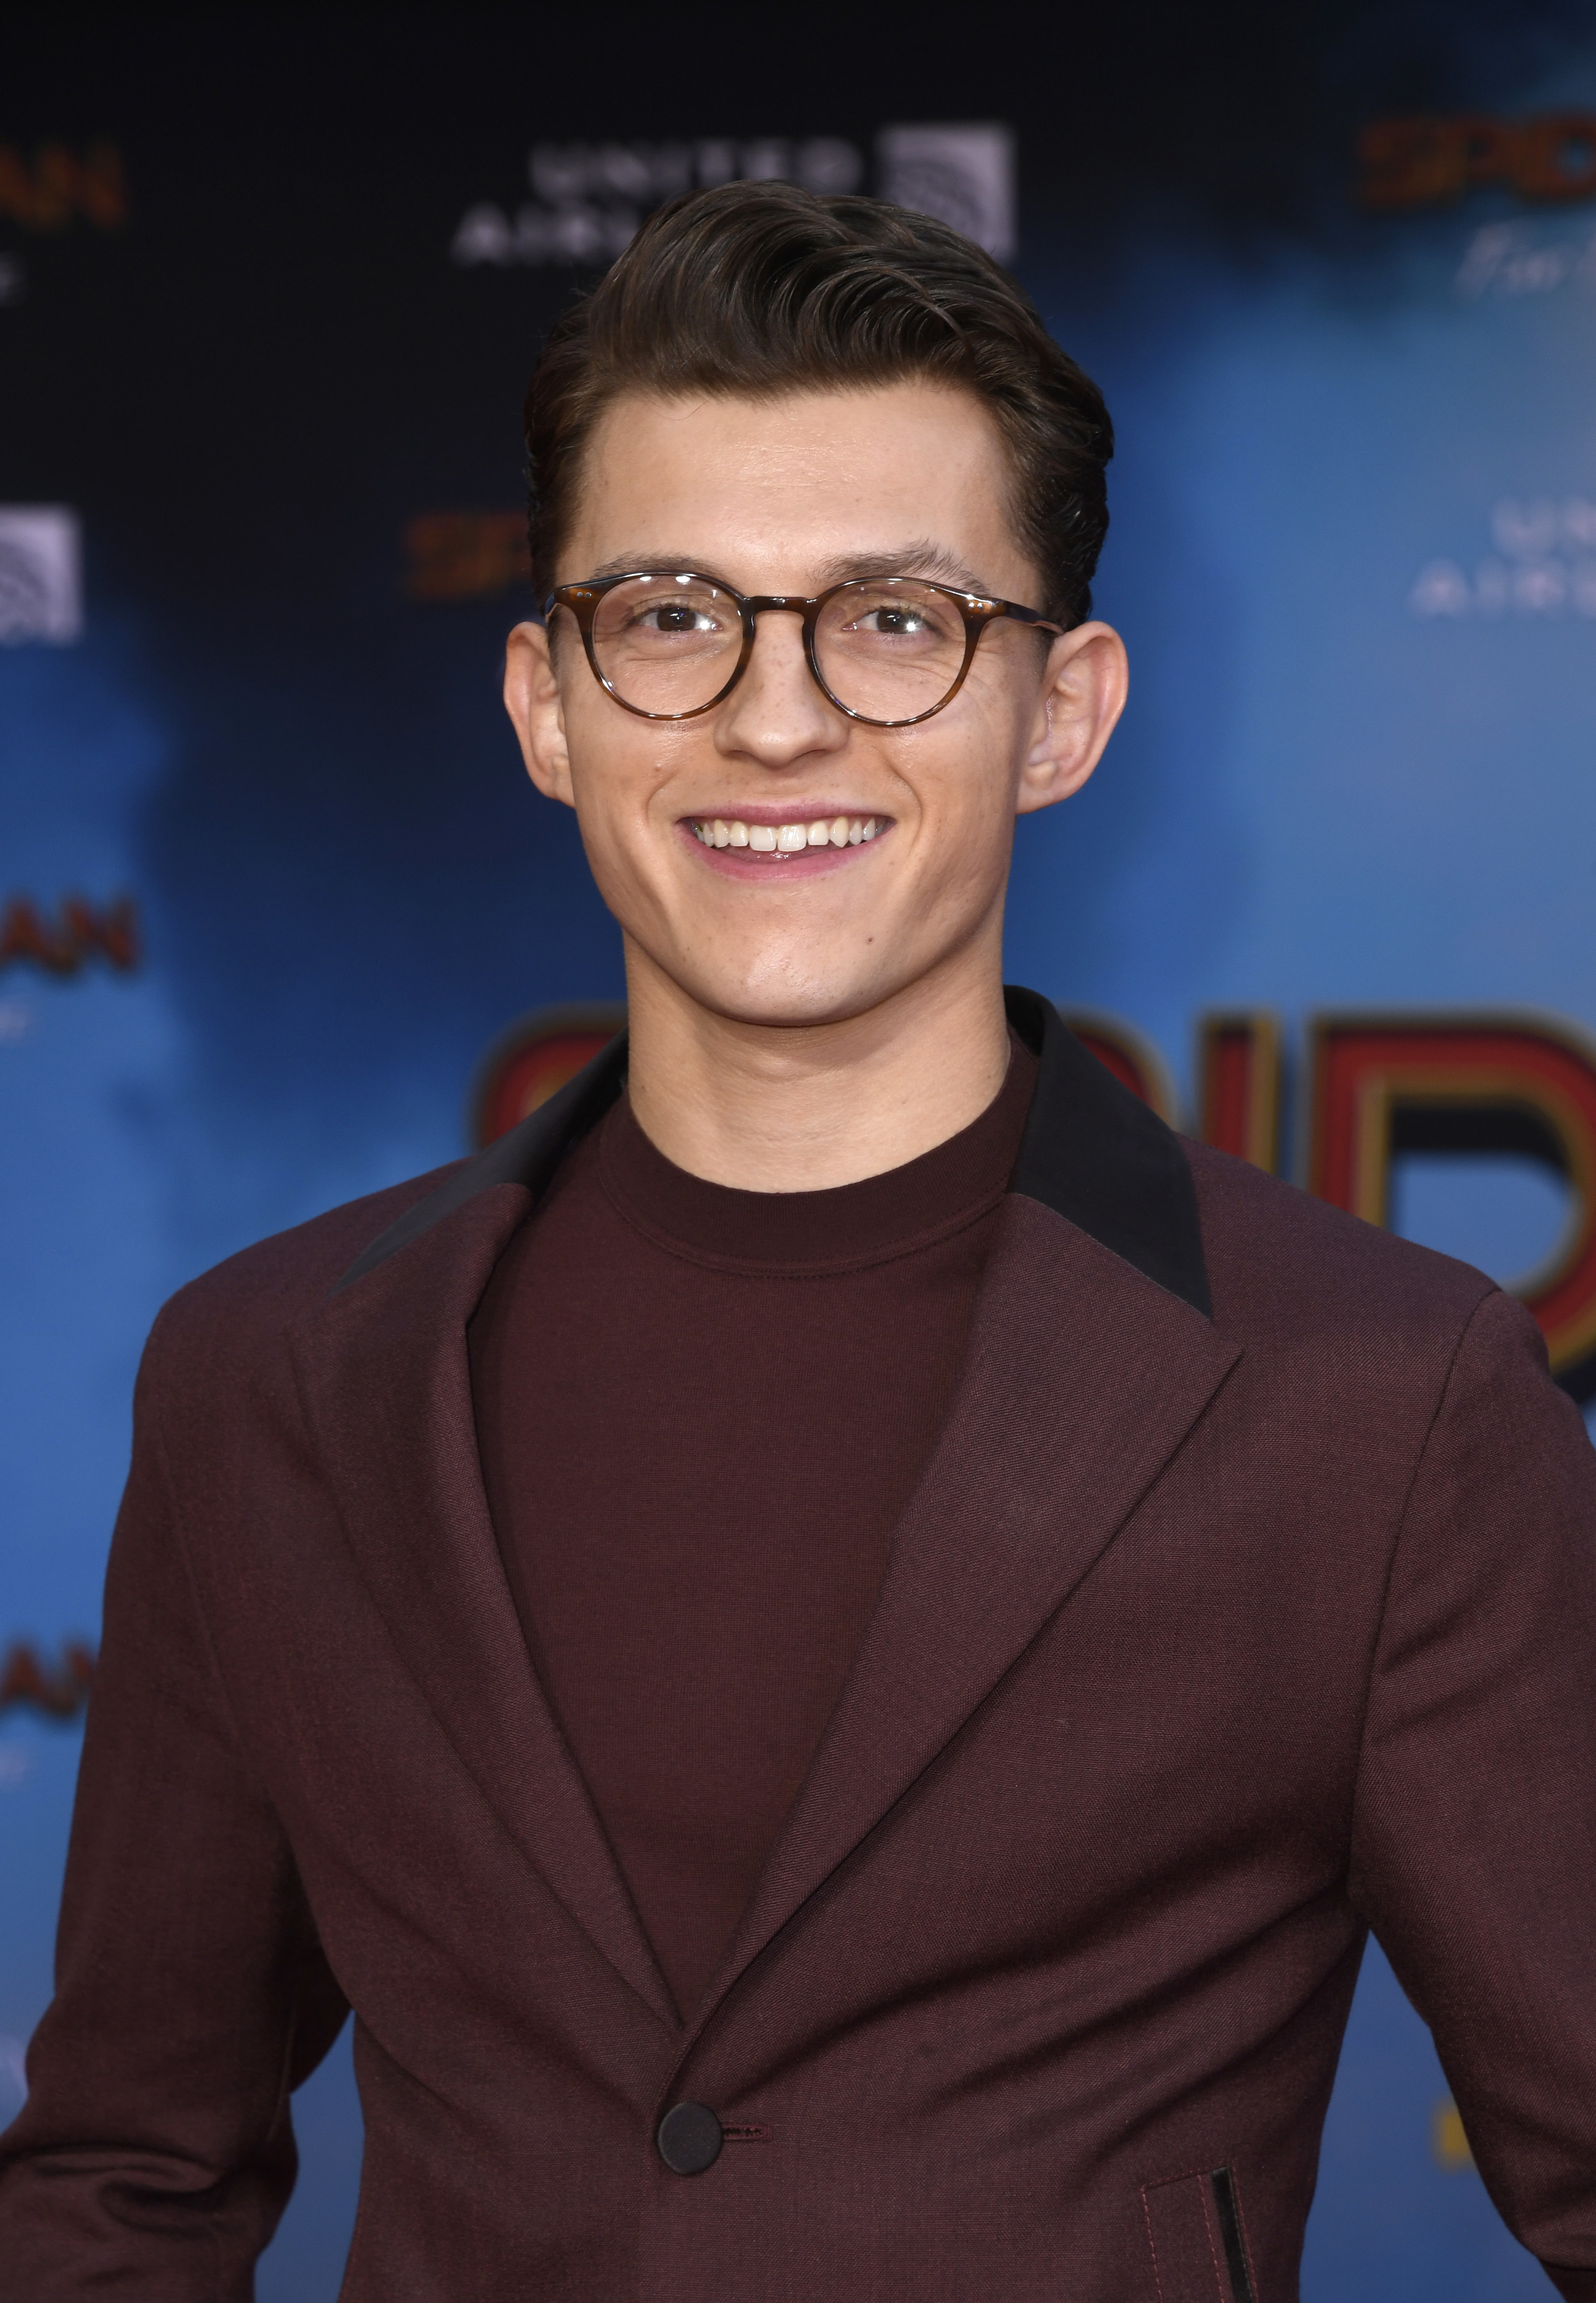 Tom Holland in a maroon suit